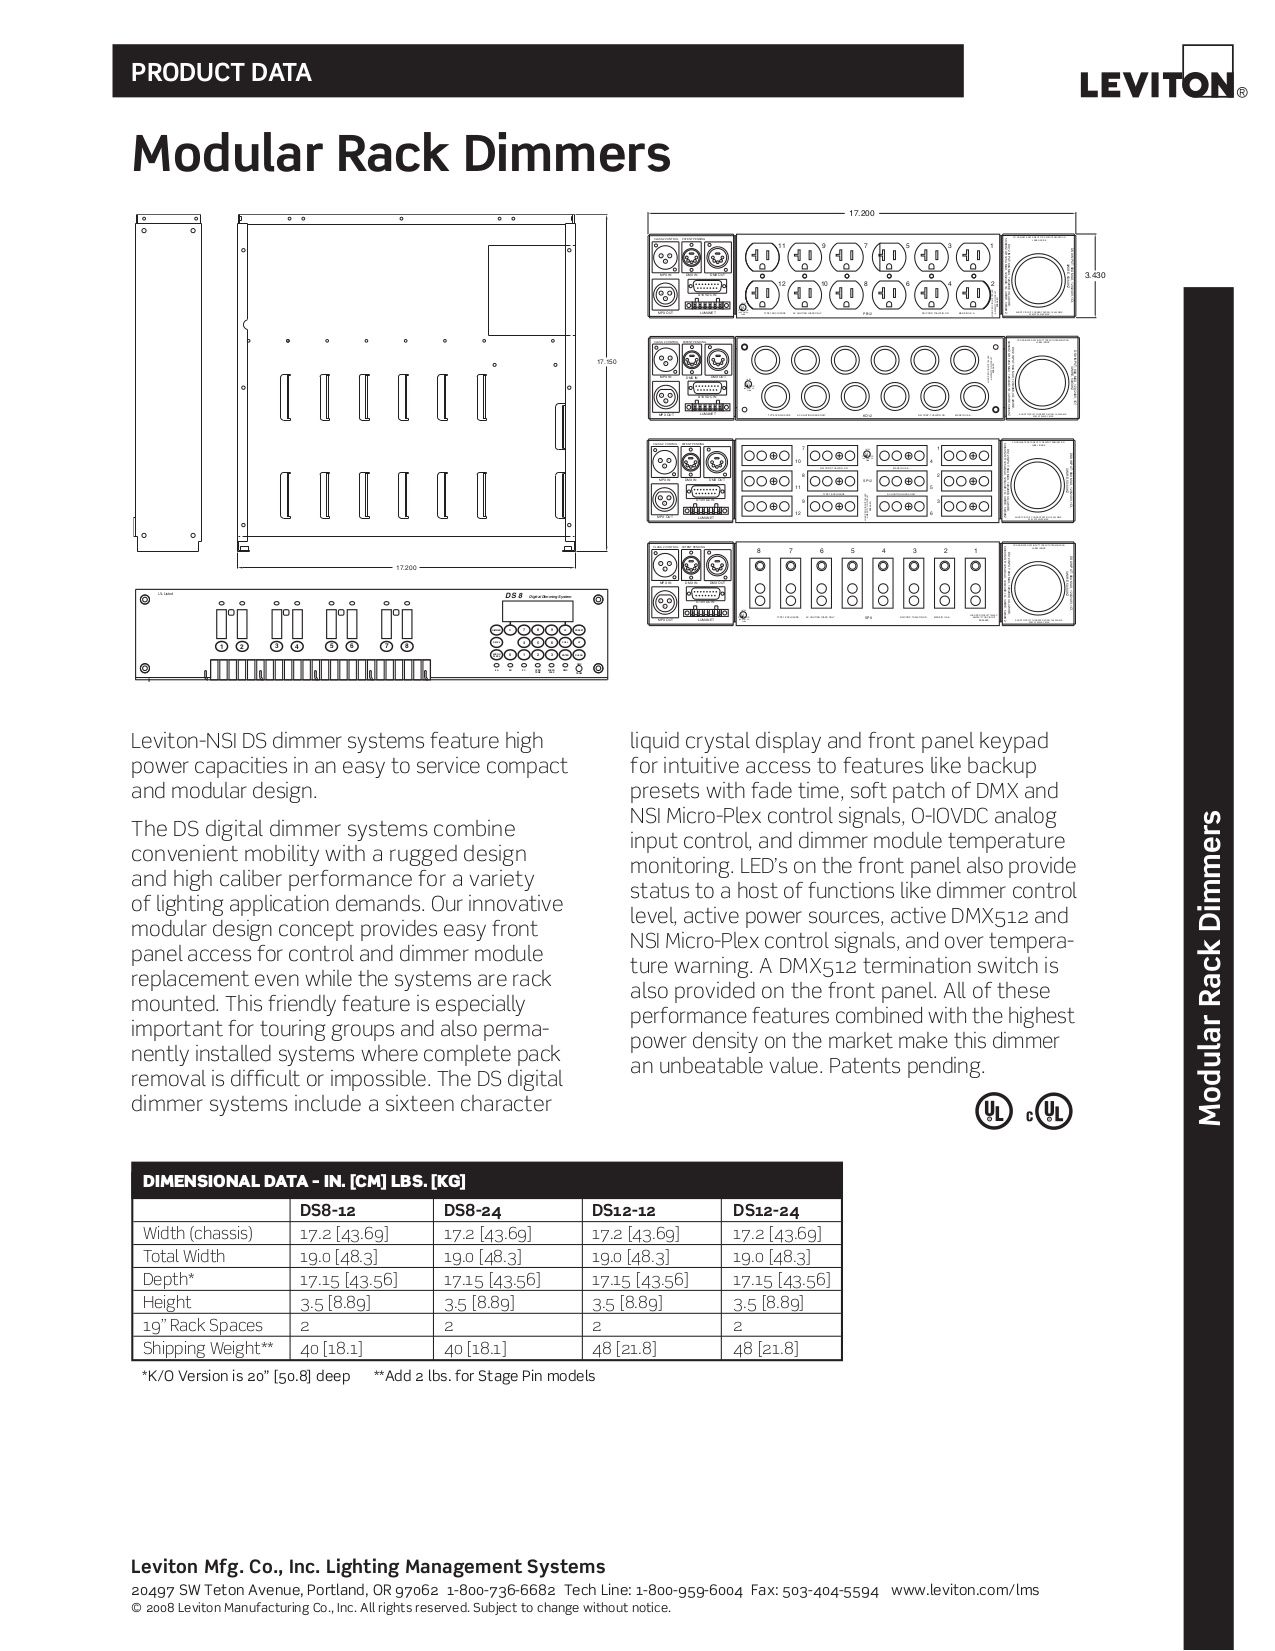 Download free pdf for Leviton Topaz 12 Dimmer Racks Other manual